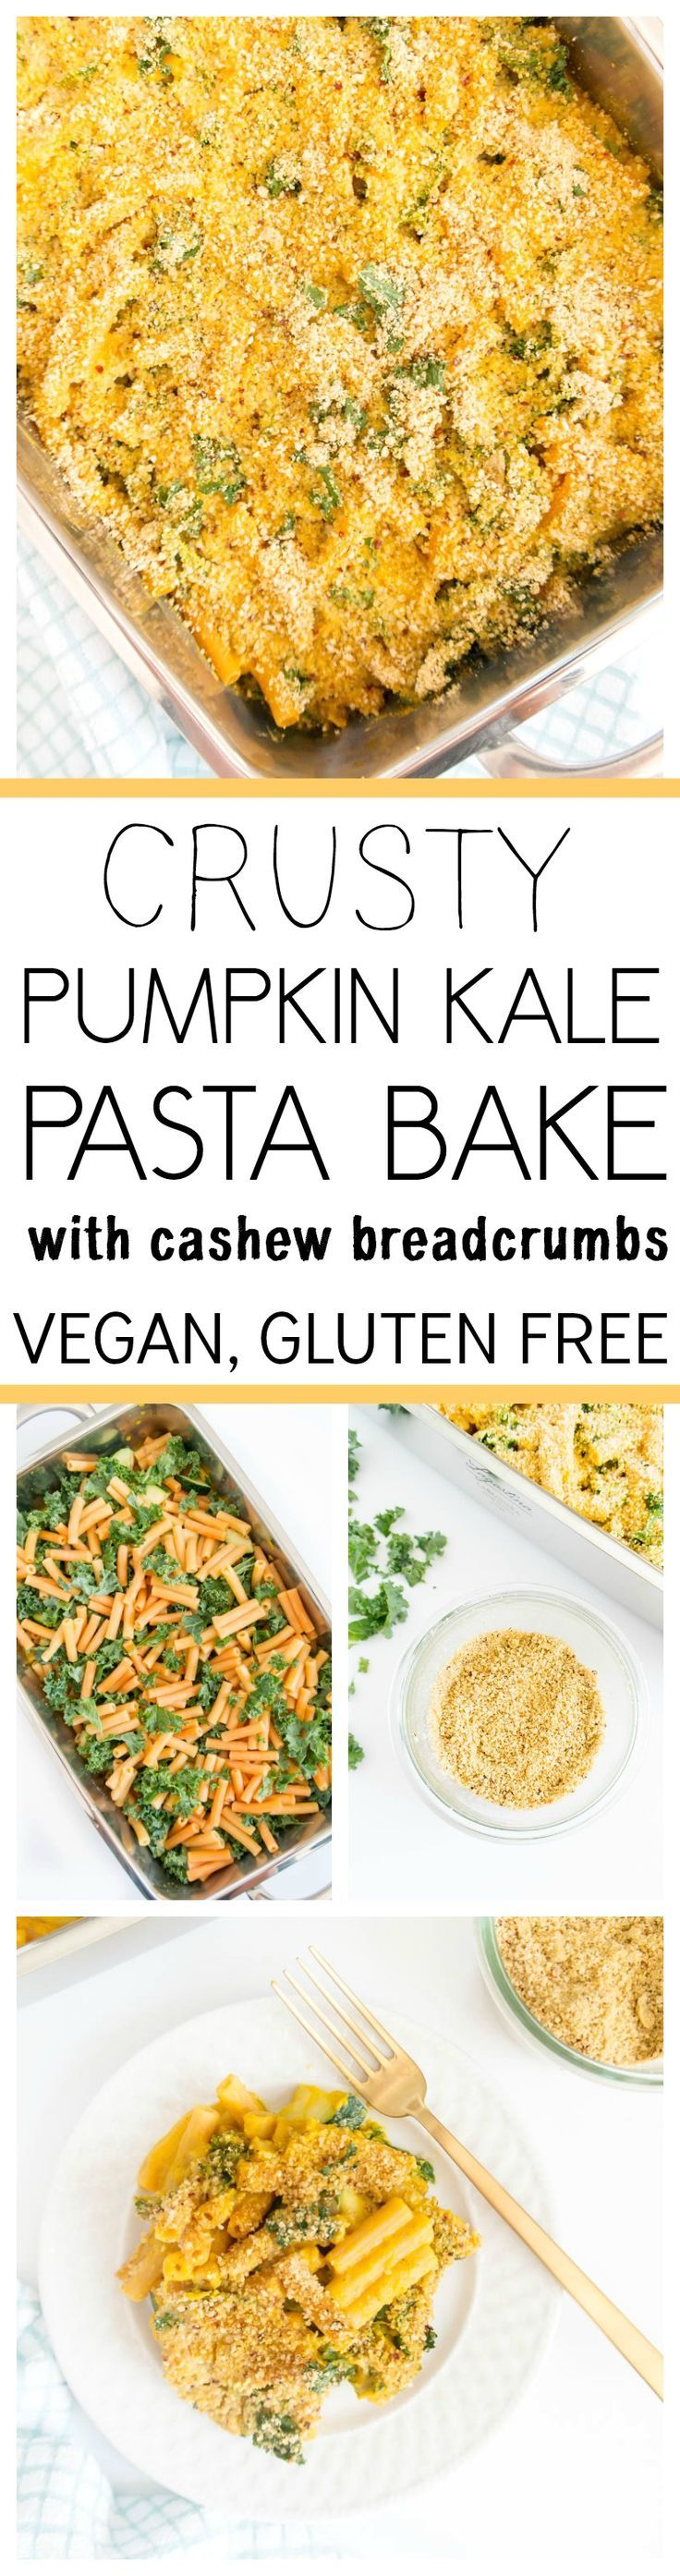 """Crusty Pumpkin & Kale Pasta Bake. Vegan and Gluten Free. Made with protein rich lentil pasta, in the creamiest savory Pumpkin Sauce, with veggies and kale baked in. Topped with grain-free cashew """"breadcrumbs"""" for a crusty topping! #vegan #pumpkin #pasta #bake"""